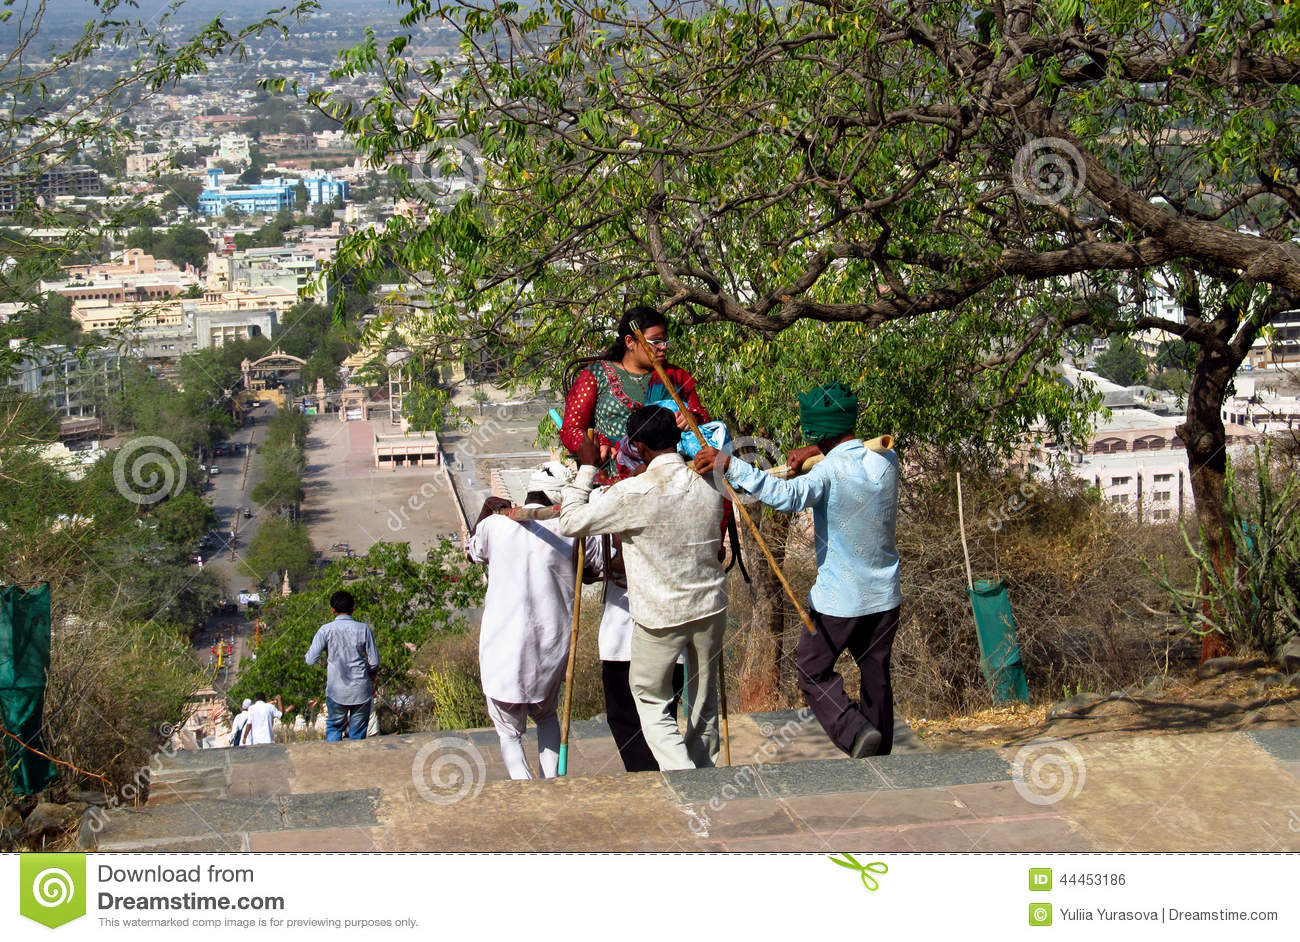 hindi pilgrimage places in india Native planetcom- best directory to find tourist places to visit in india - choose  your  हिल स्टेशन pilgrimage  विषय: city, heritage, wildlife, pilgrimage.